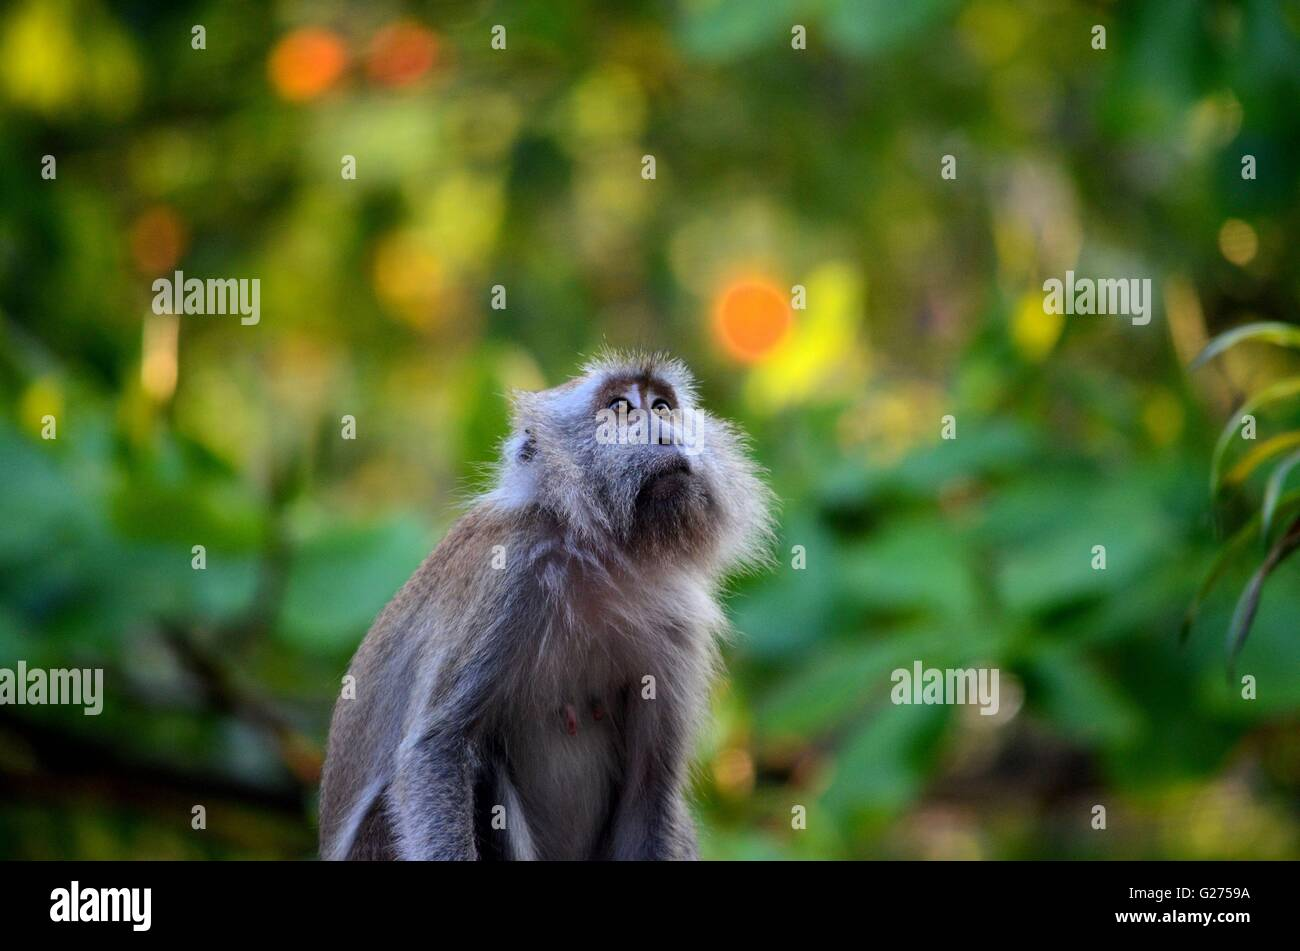 Female long tailed macaque monkey gazes upwards inside dense Malaysian rain forest in Tioman island - Stock Image